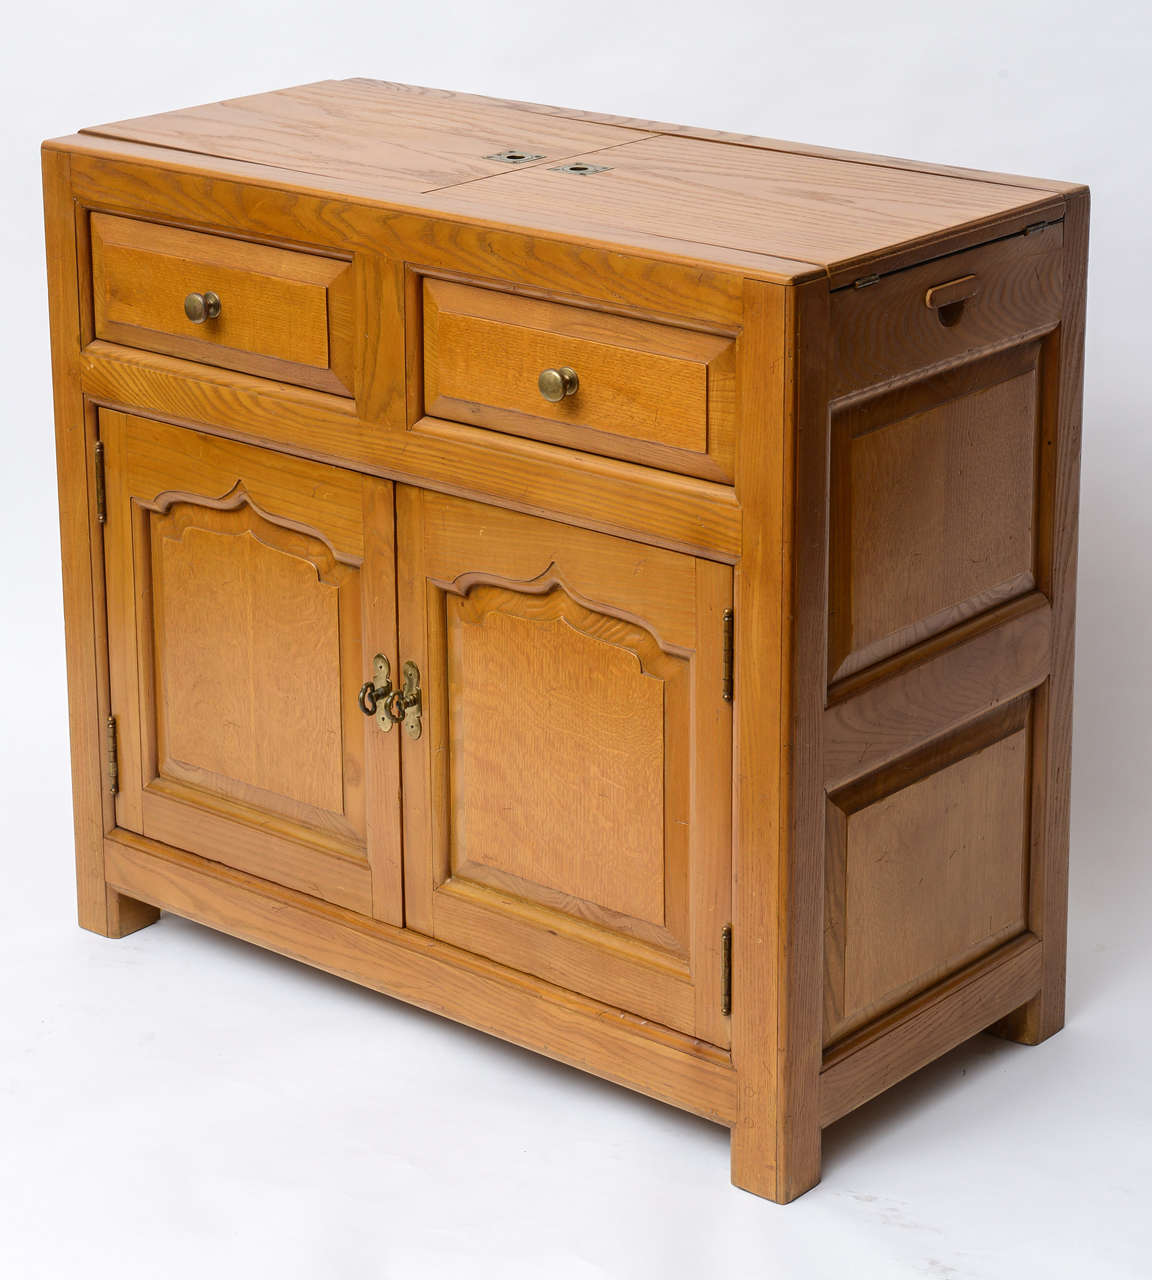 Henredon dry bar cabinet 1970s at 1stdibs for Home dry bar furniture